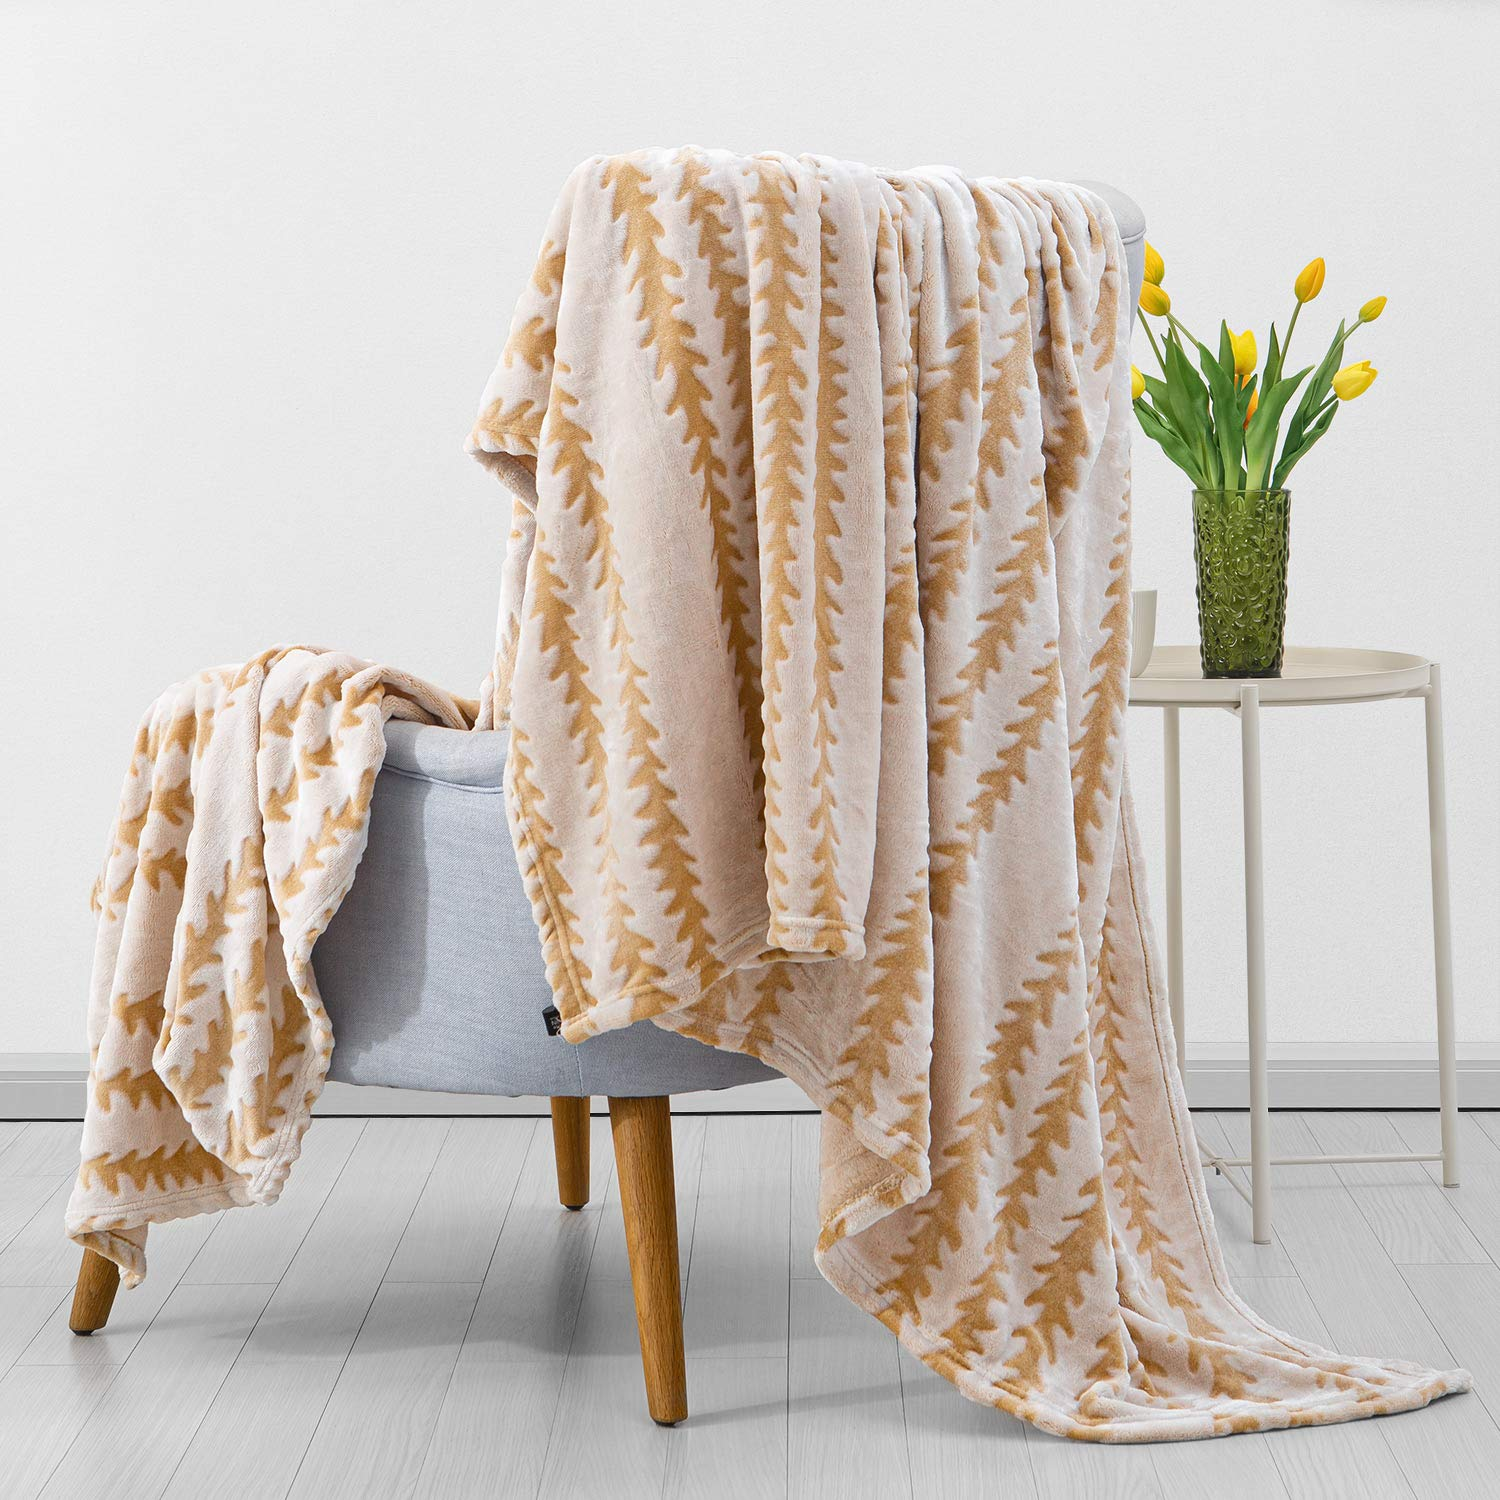 """$13.45 SEDONA HOUSE Covered Flannel Blanket, Light Brown Striped, Full Size 60""""x80"""""""